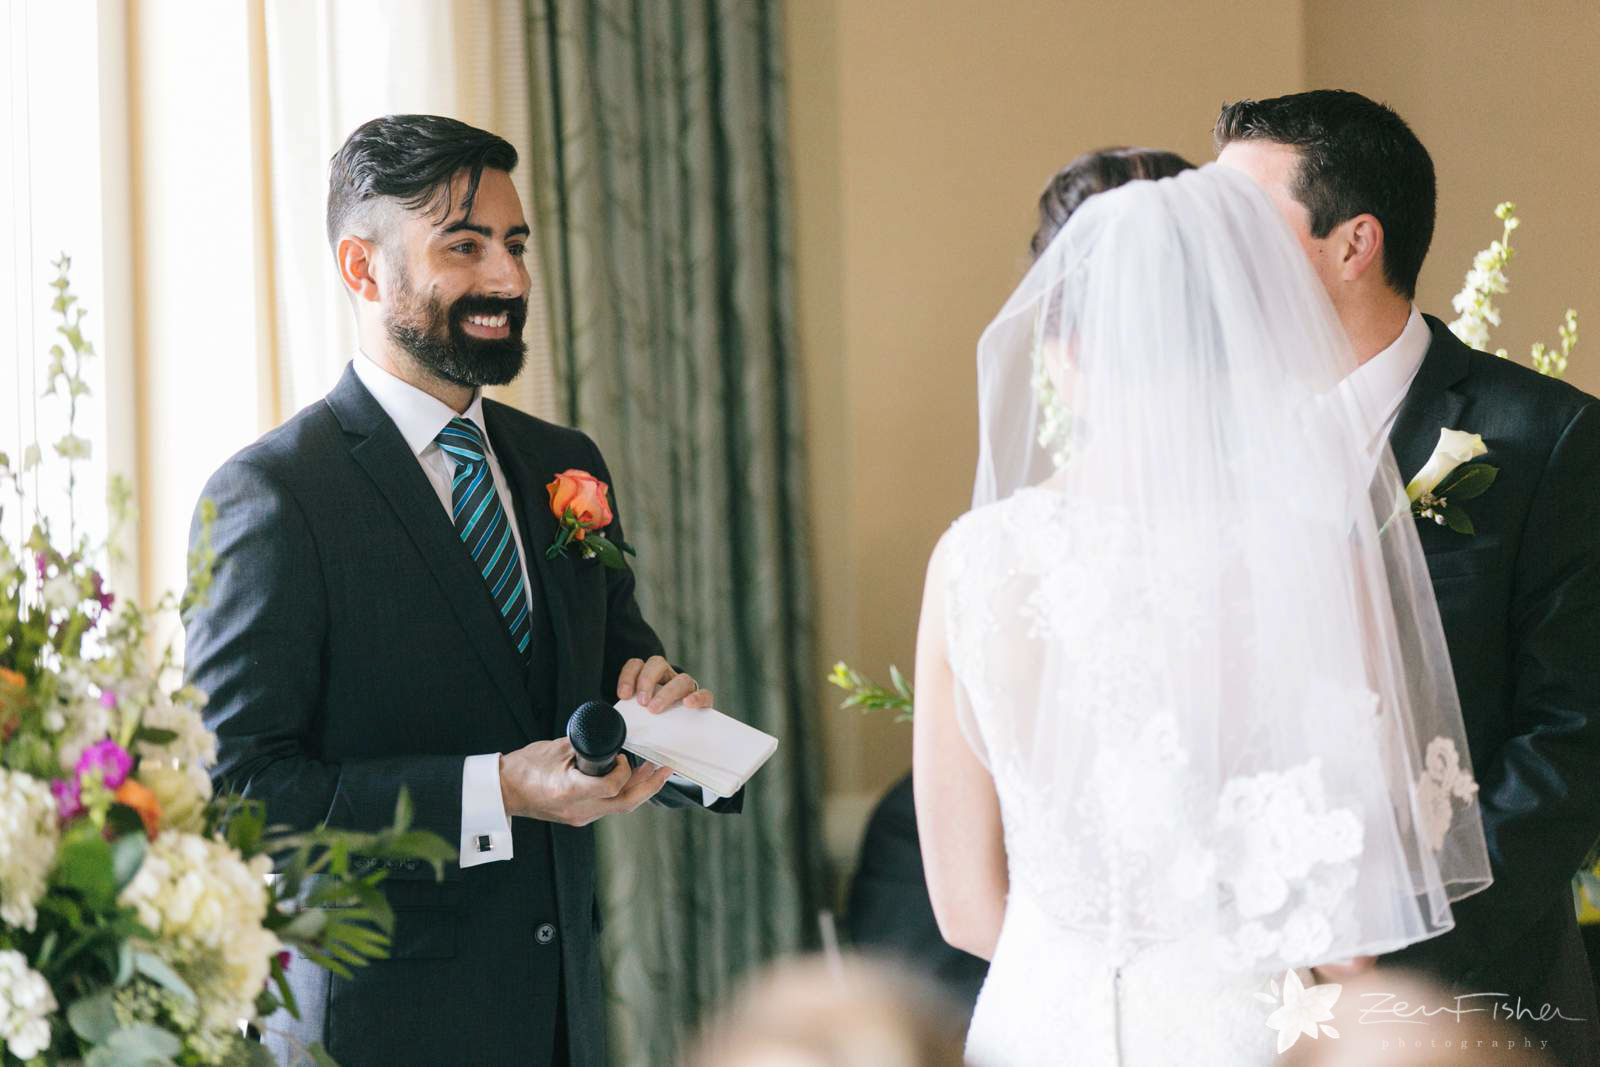 Best man makes a blessing during wedding ceremony. Brother of bride smiles at bride